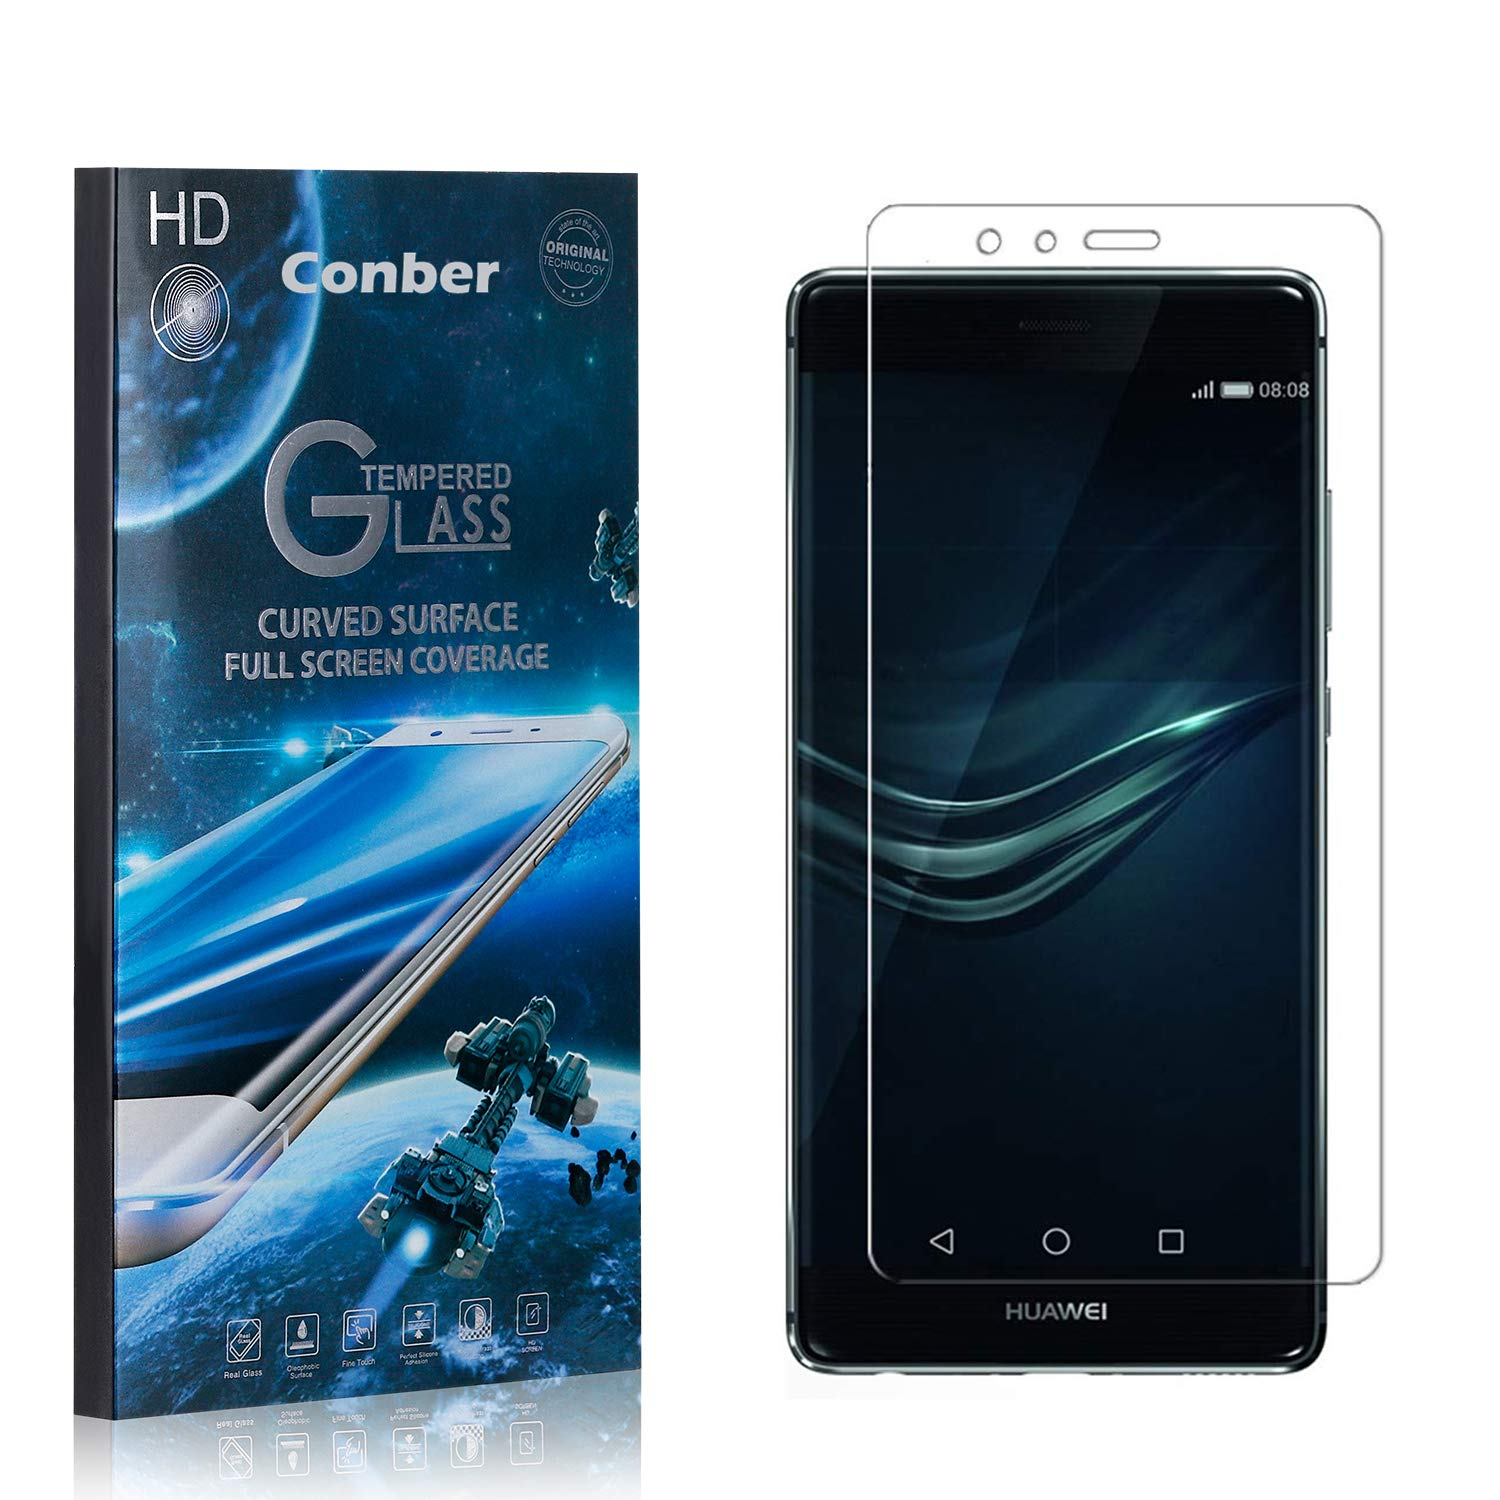 Conber 3 Pack Screen Protector Honor for Scratch-R Huawei Denver New Orleans Mall Mall 6C